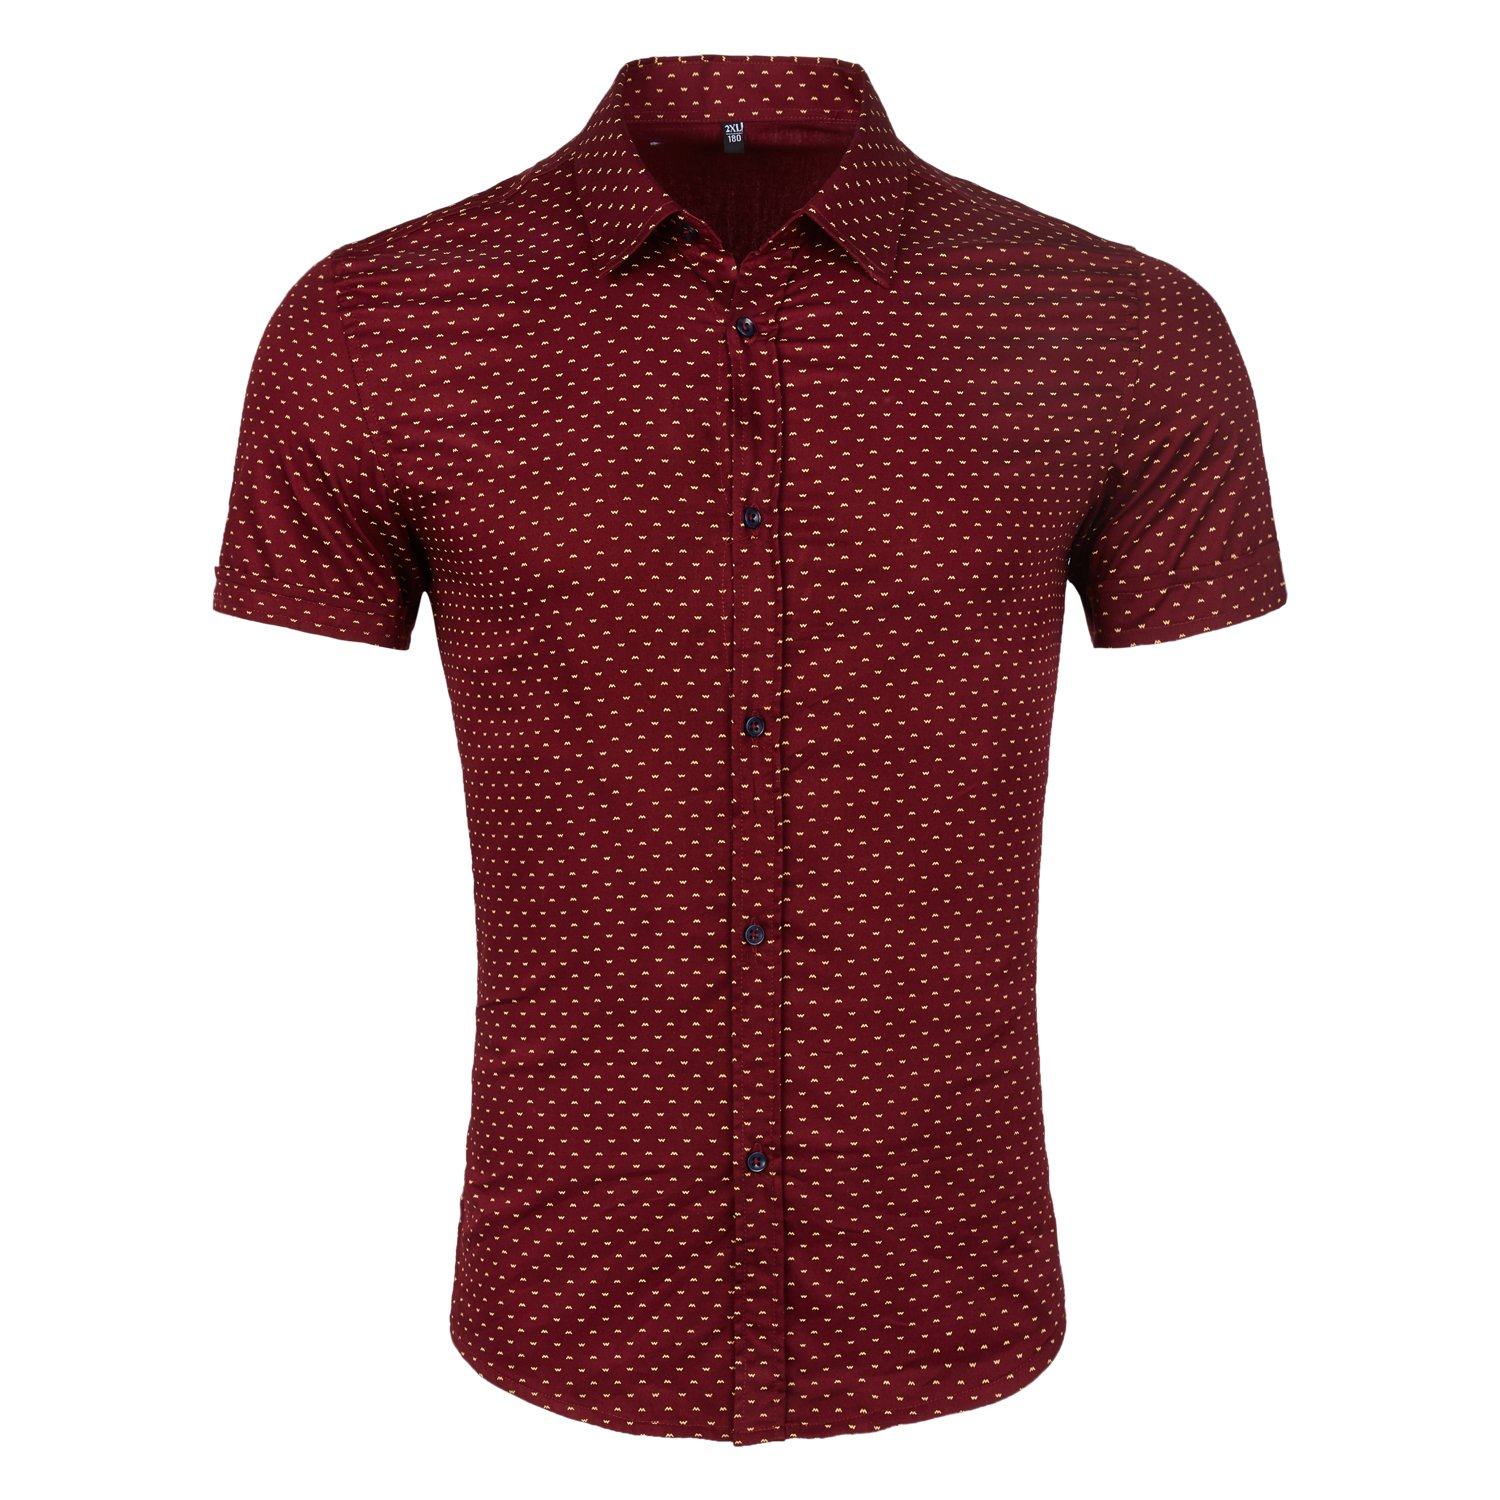 WULFUL Men's Printed Dress Shirt Business Casual Short Sleeve Regular Fit Button Down Point Collar Shirts Wine Red02 X-Large